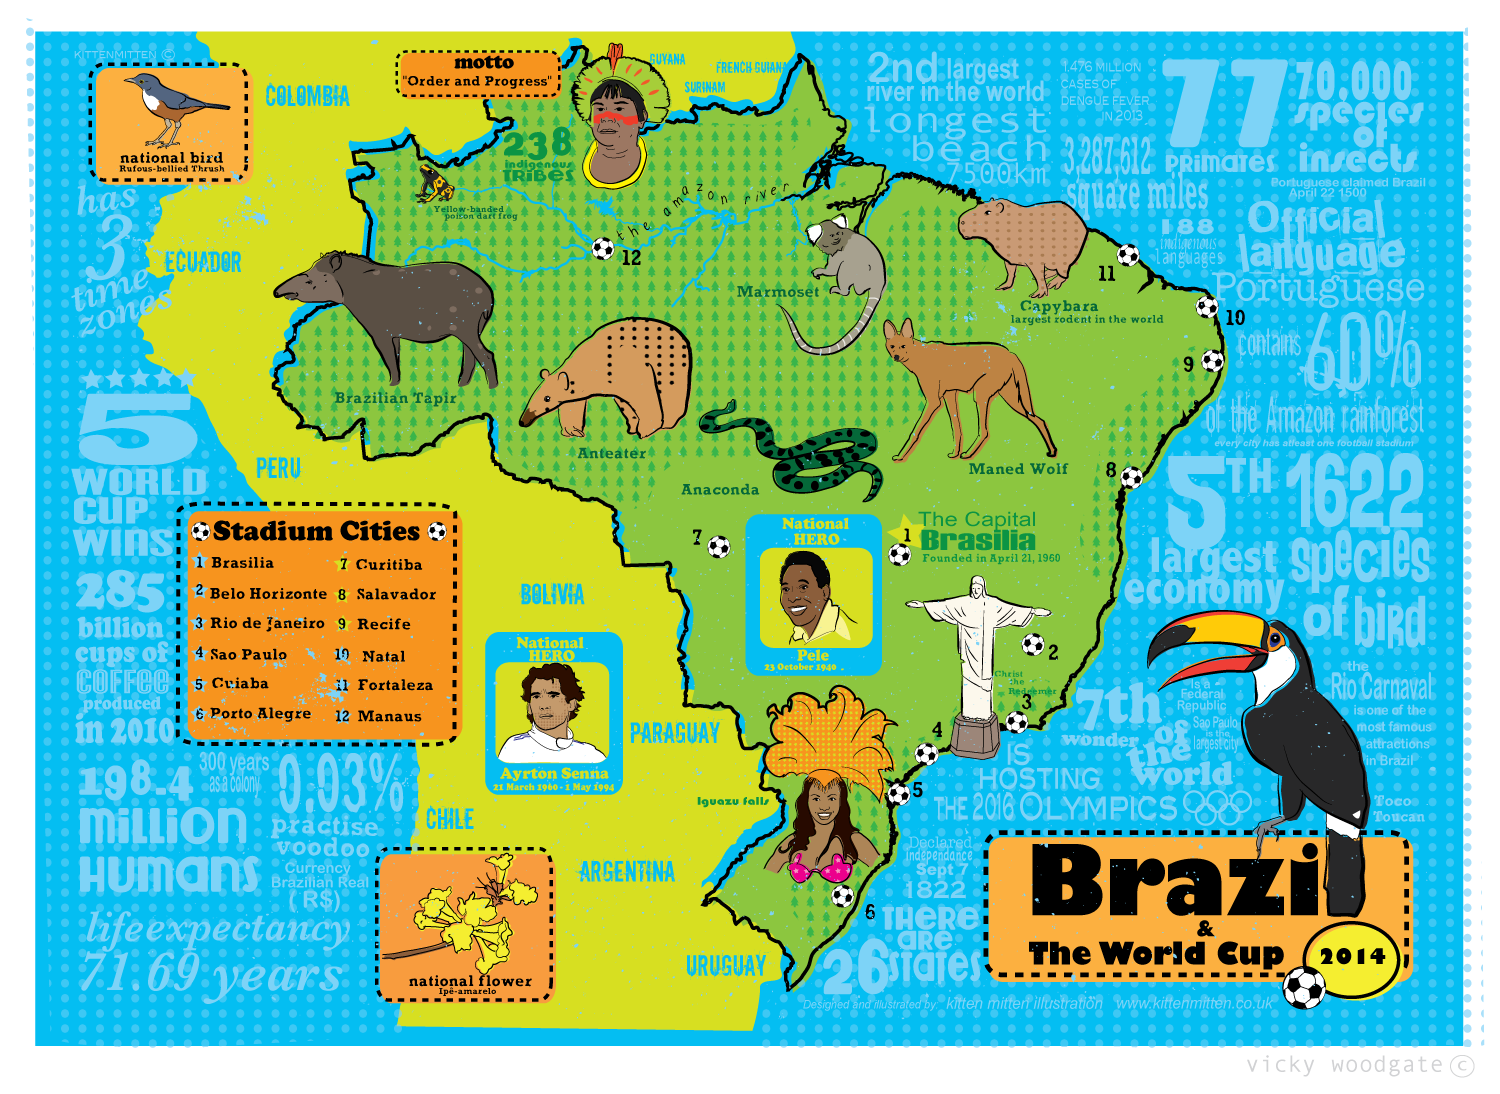 Vicky woodgate world cup mailout map self promotional mailout map of brazil and the world cup 2014 gumiabroncs Images